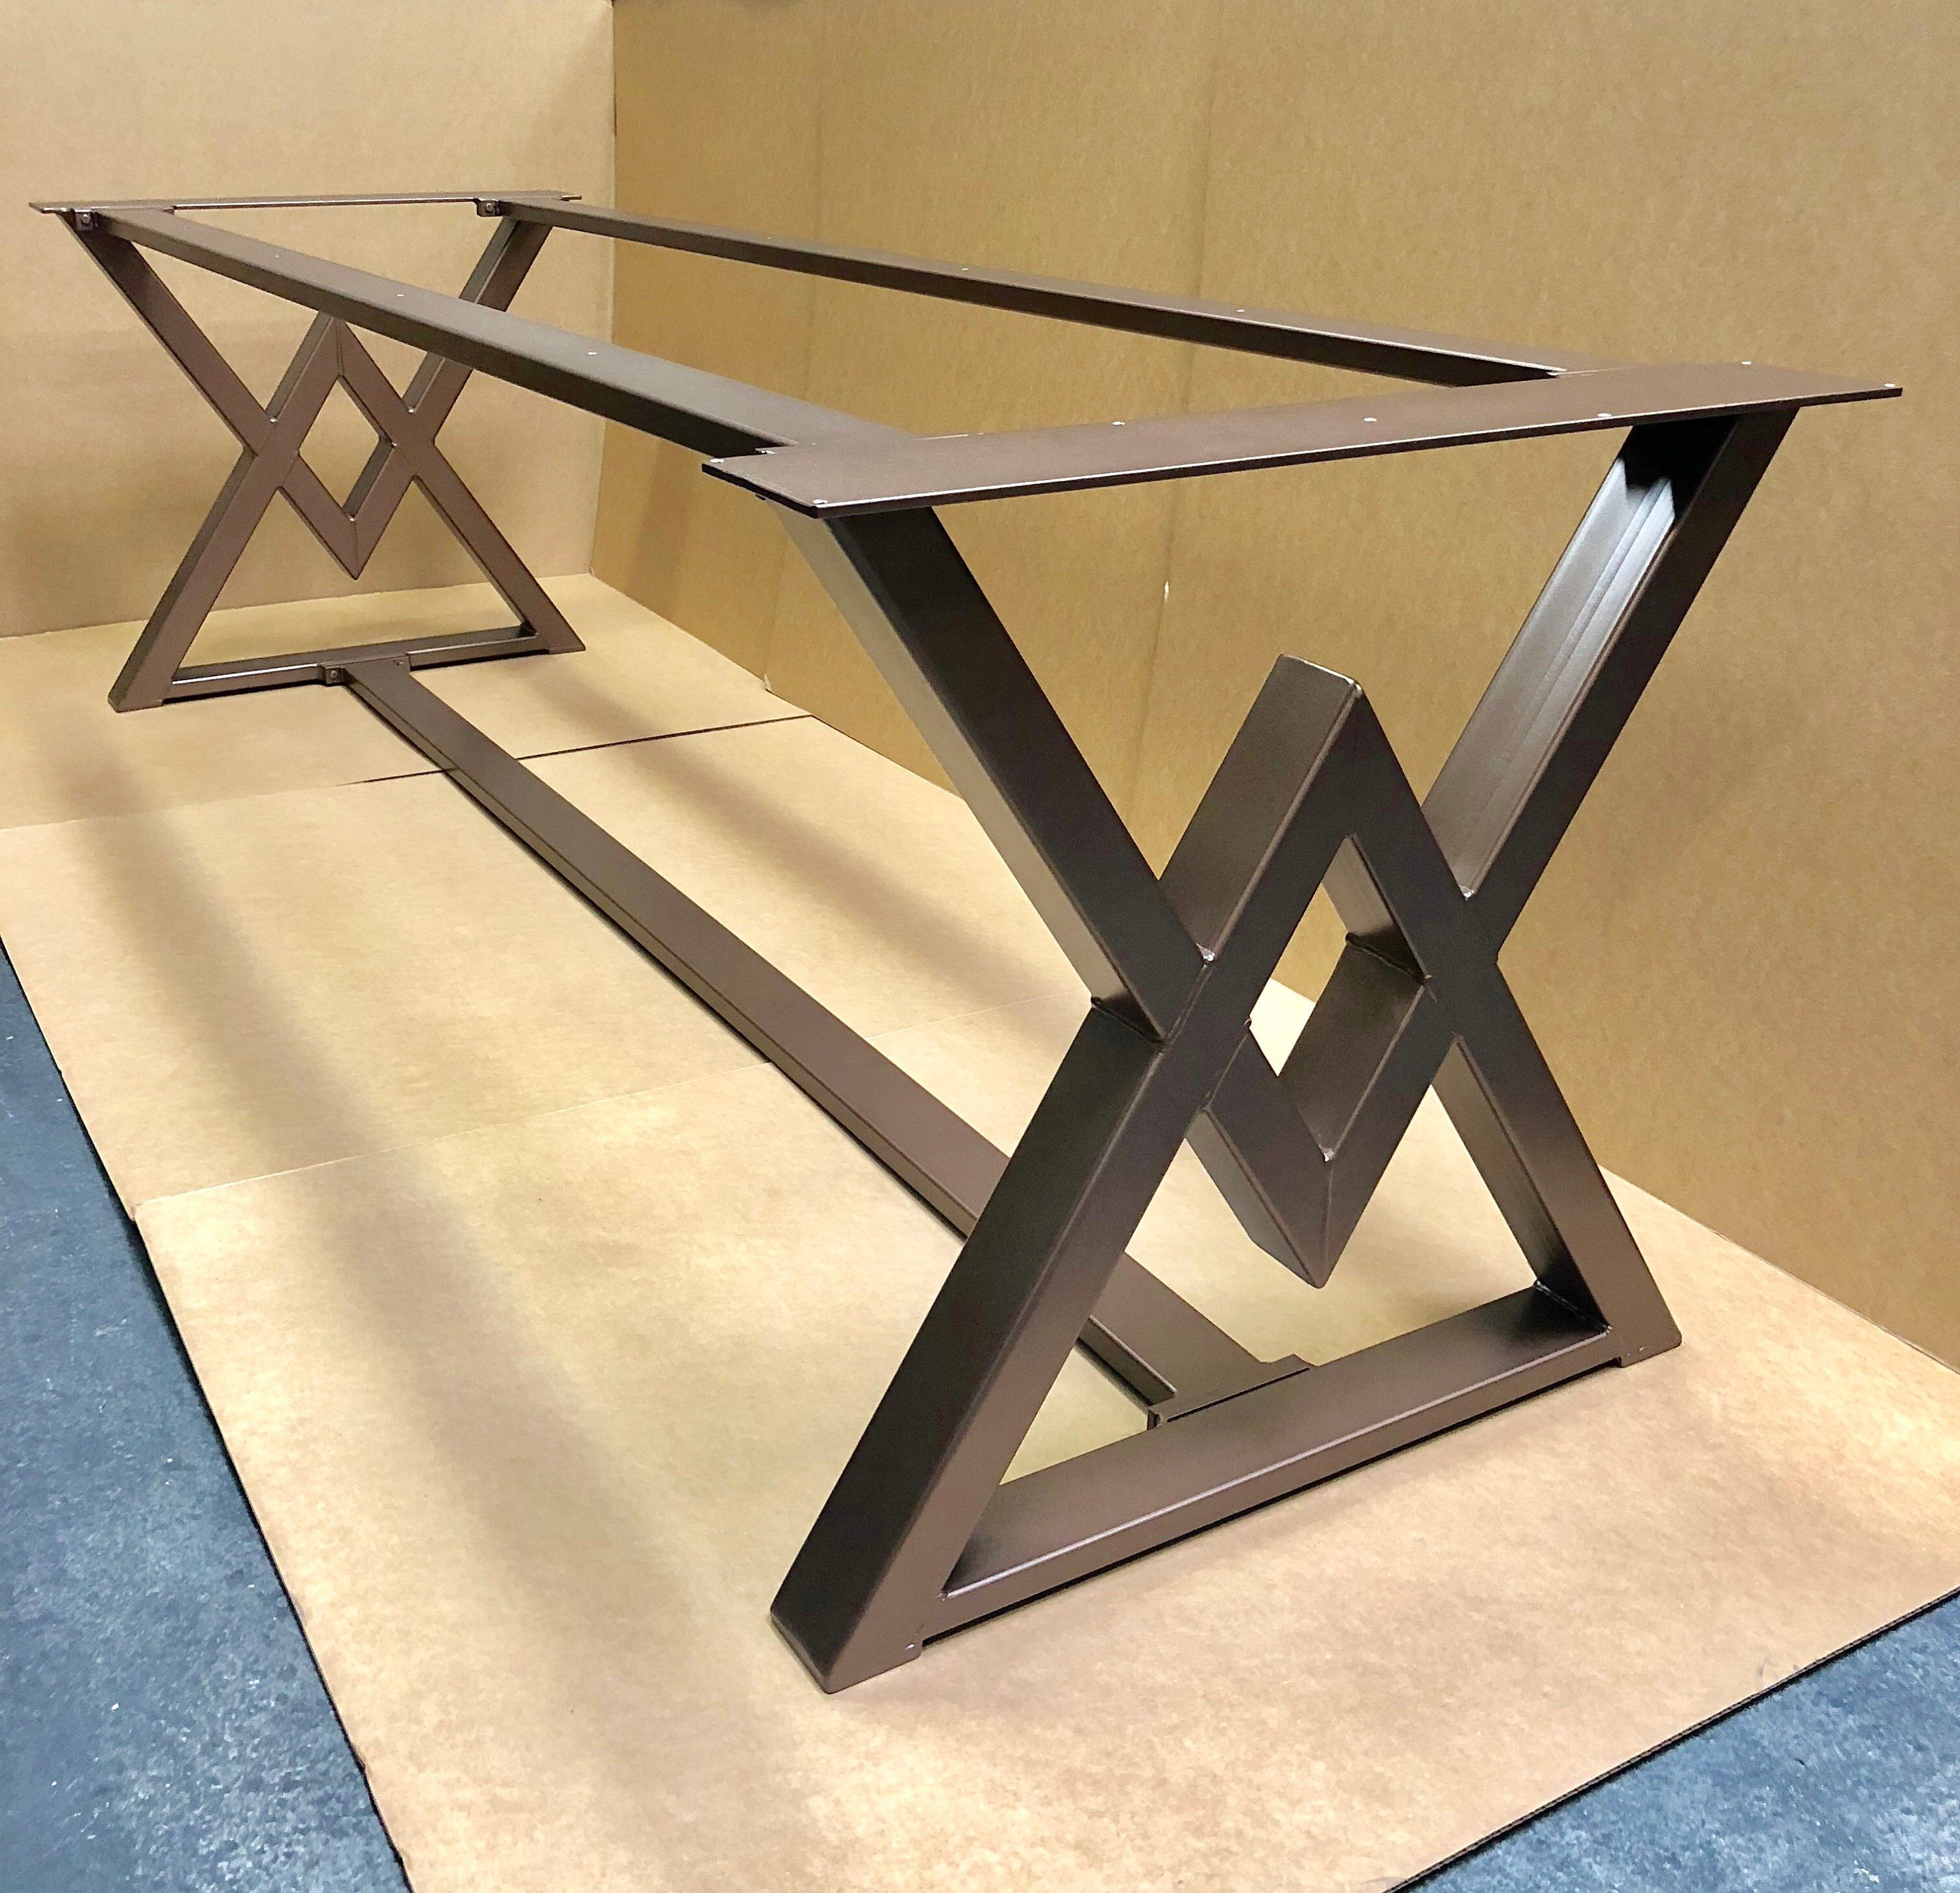 The Diamond Dining Table Base, Industrial Base, Sturdy Heavy Duty Dining Table Base #menus